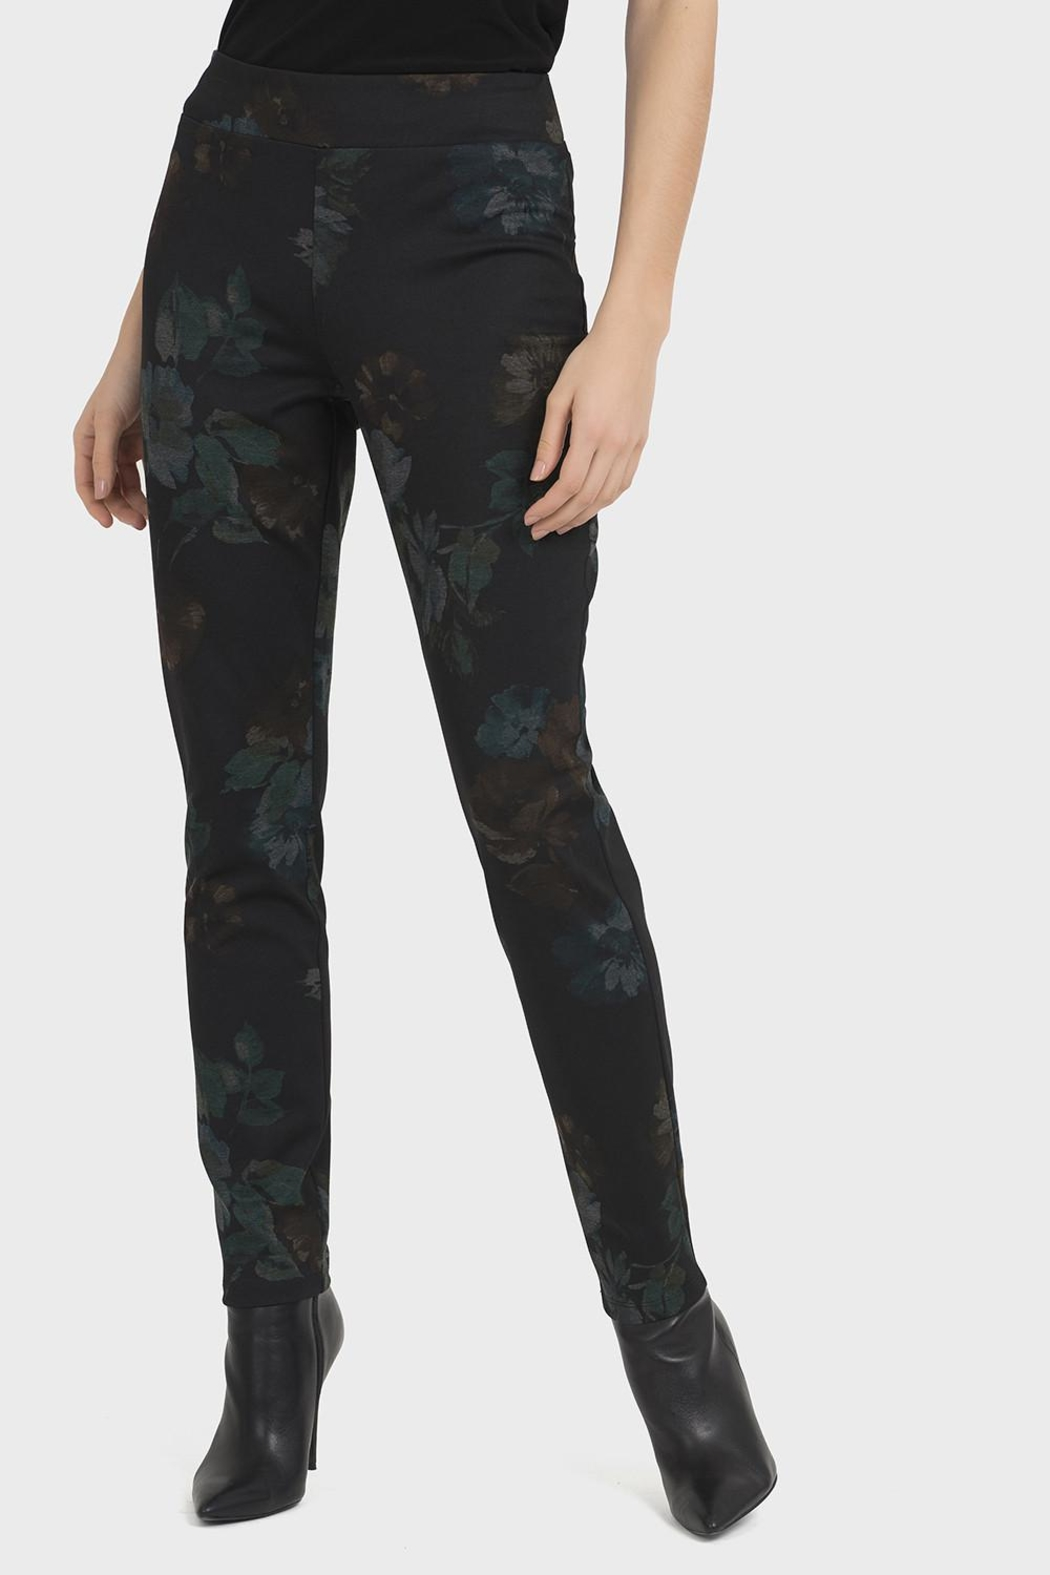 Joseph Ribkoff Dark Floral Pants - Front Cropped Image